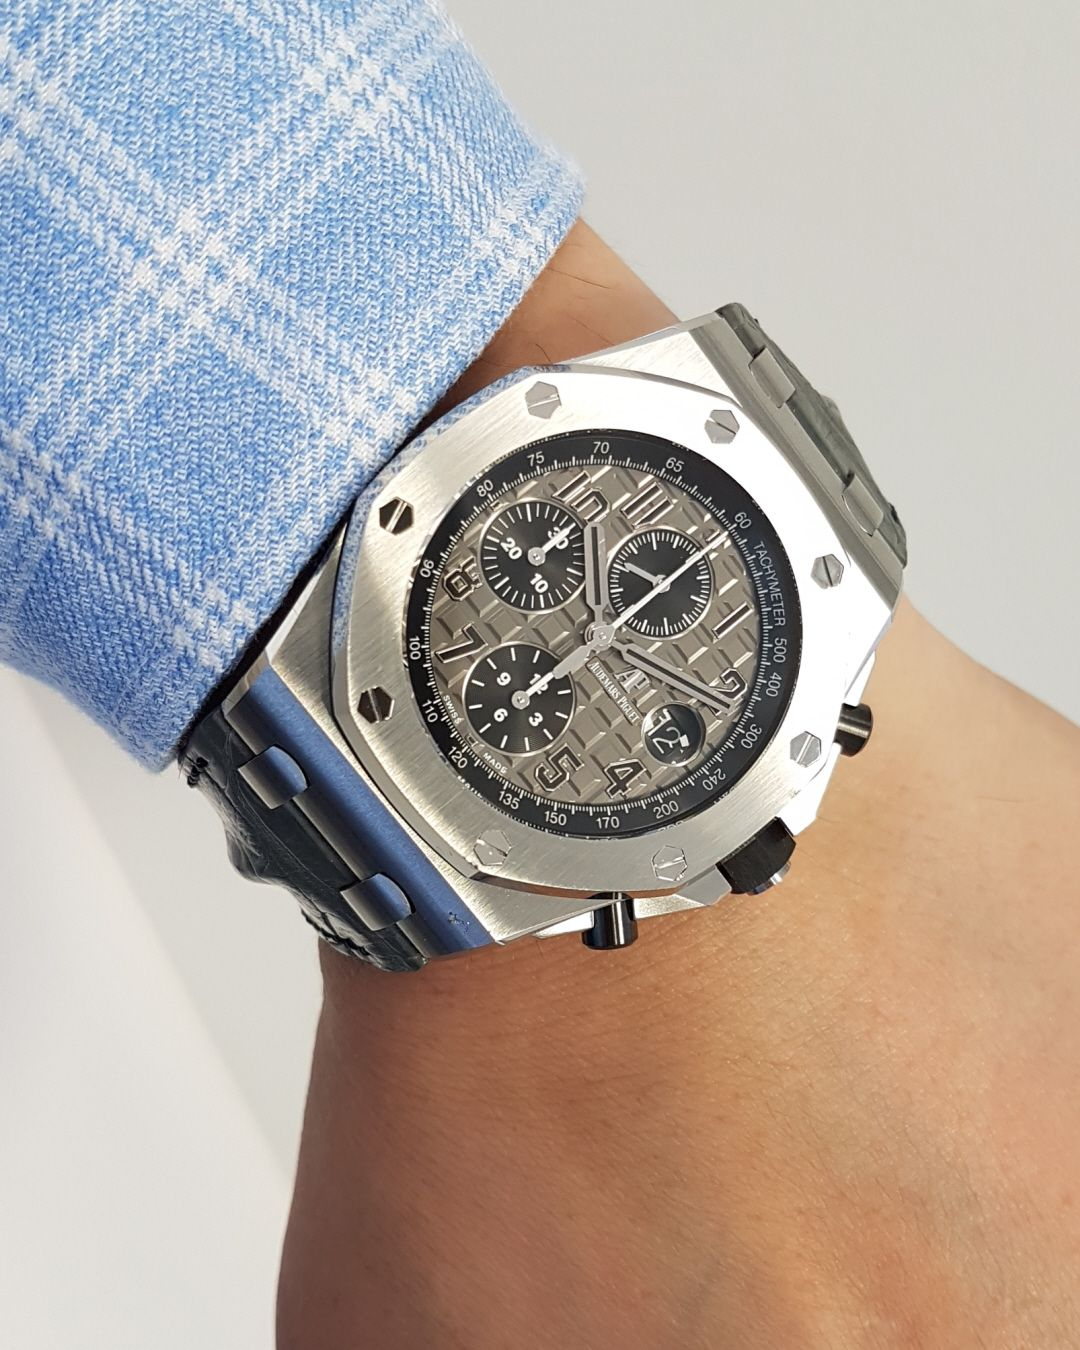 audemars piguet royal oak offshore 39 elephant 39 26470st oo watch On royal oak offshore elephant